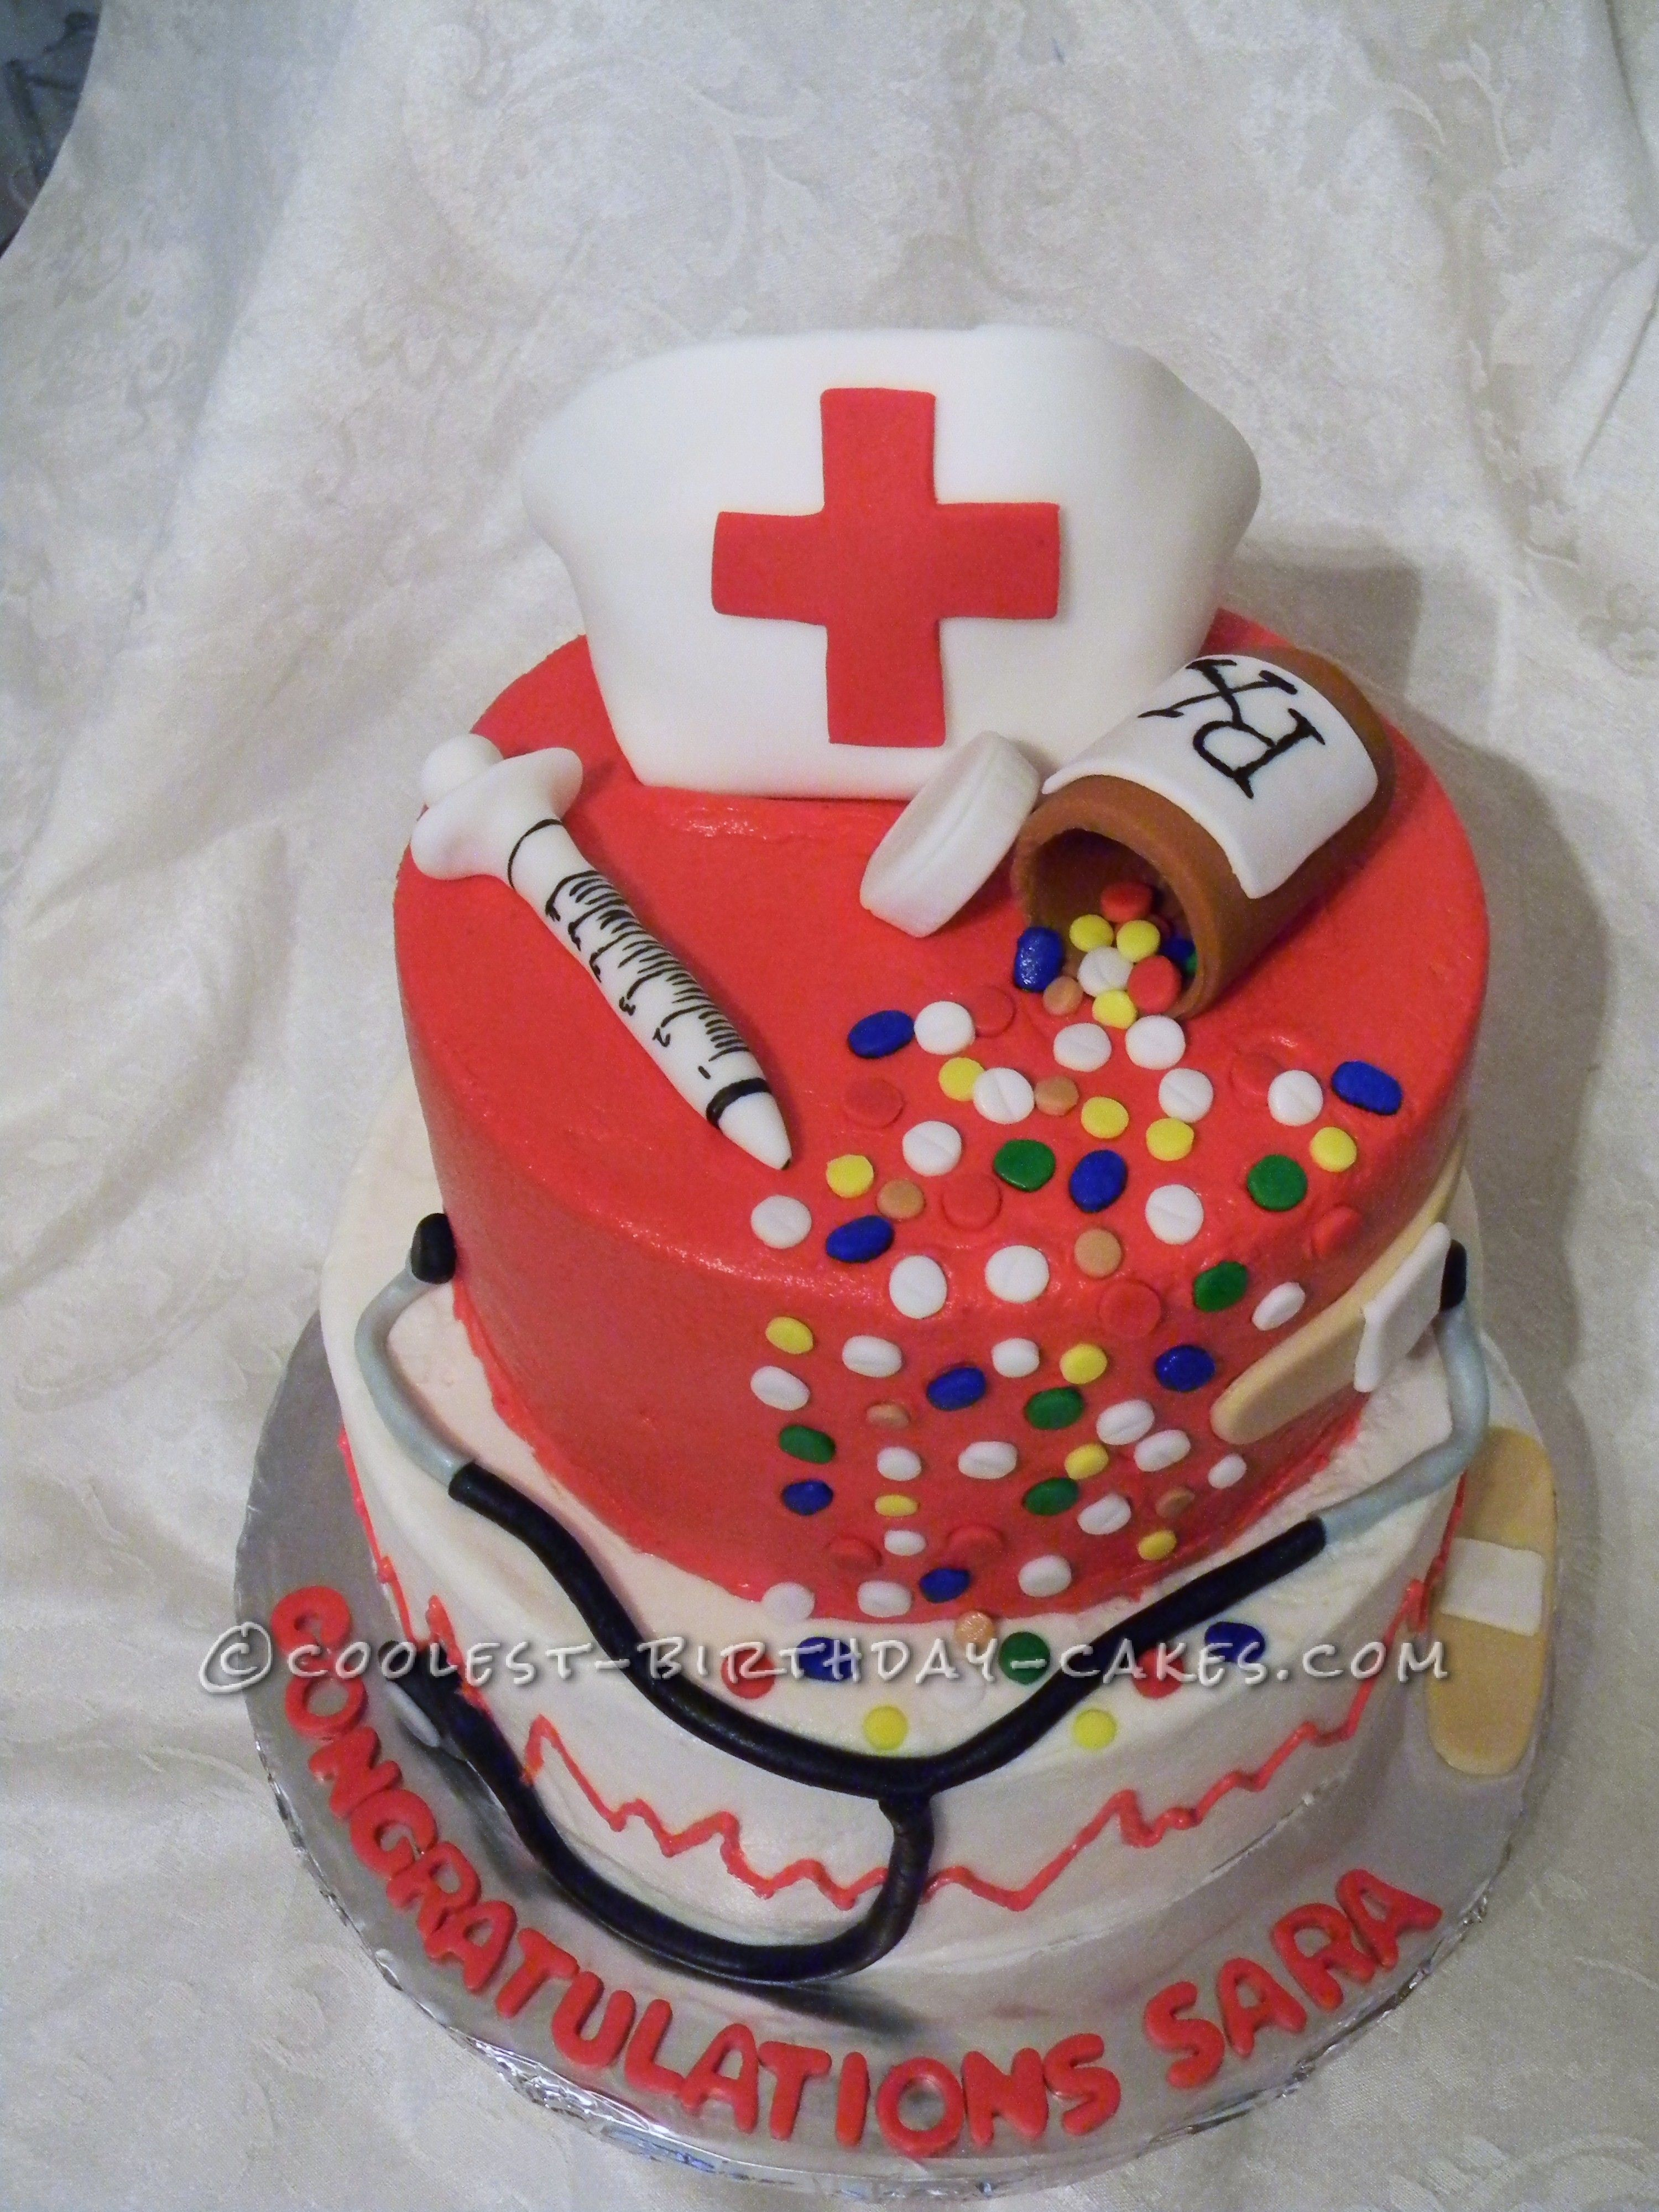 Coolest Nurses Graduation Cake This Website Is The Pinterest Of Birthday Ideas